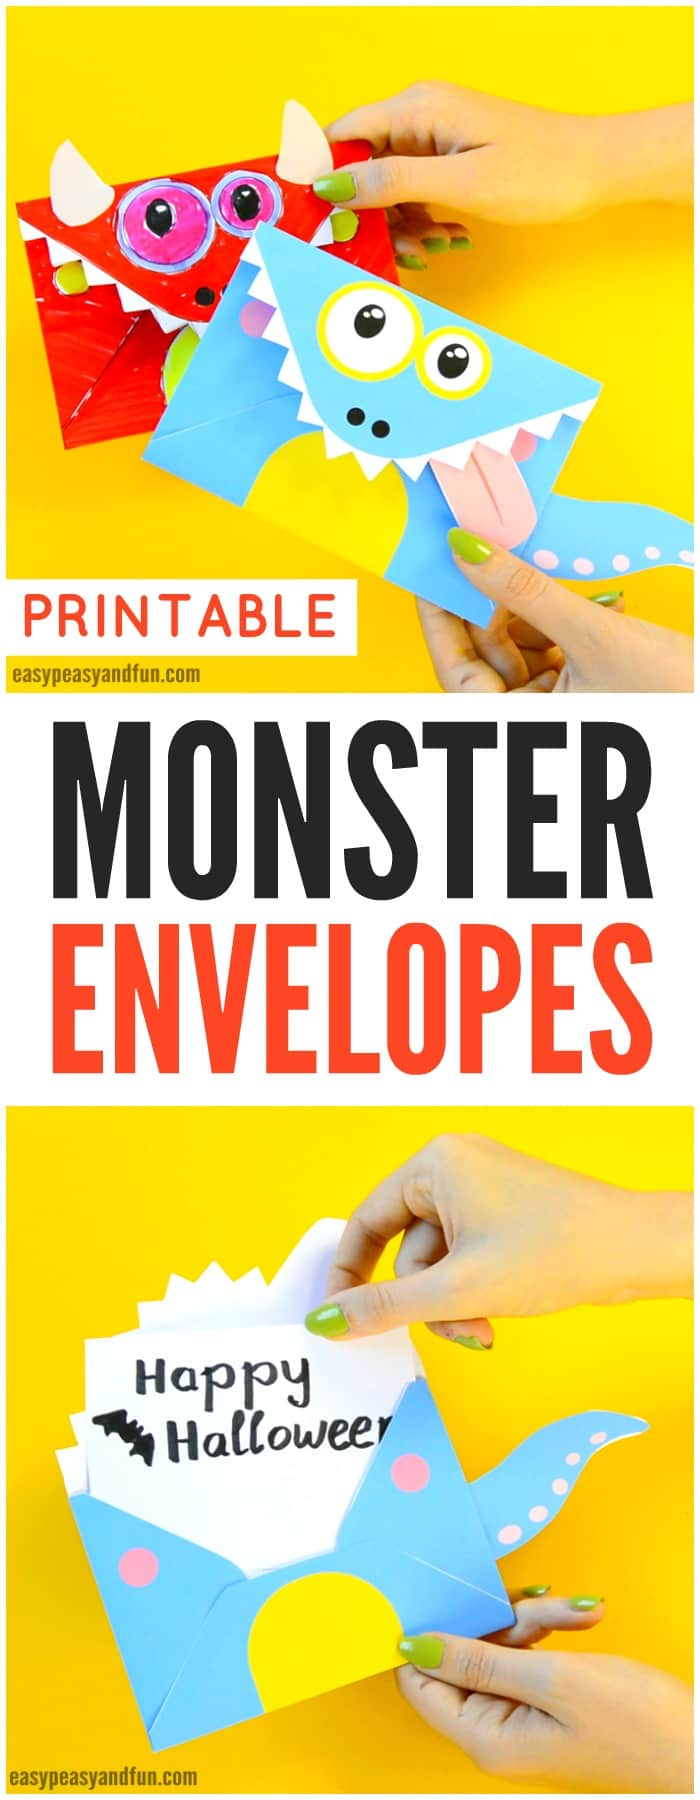 image regarding Printable Monster titled Printable Monster Envelopes - Uncomplicated Peasy and Exciting